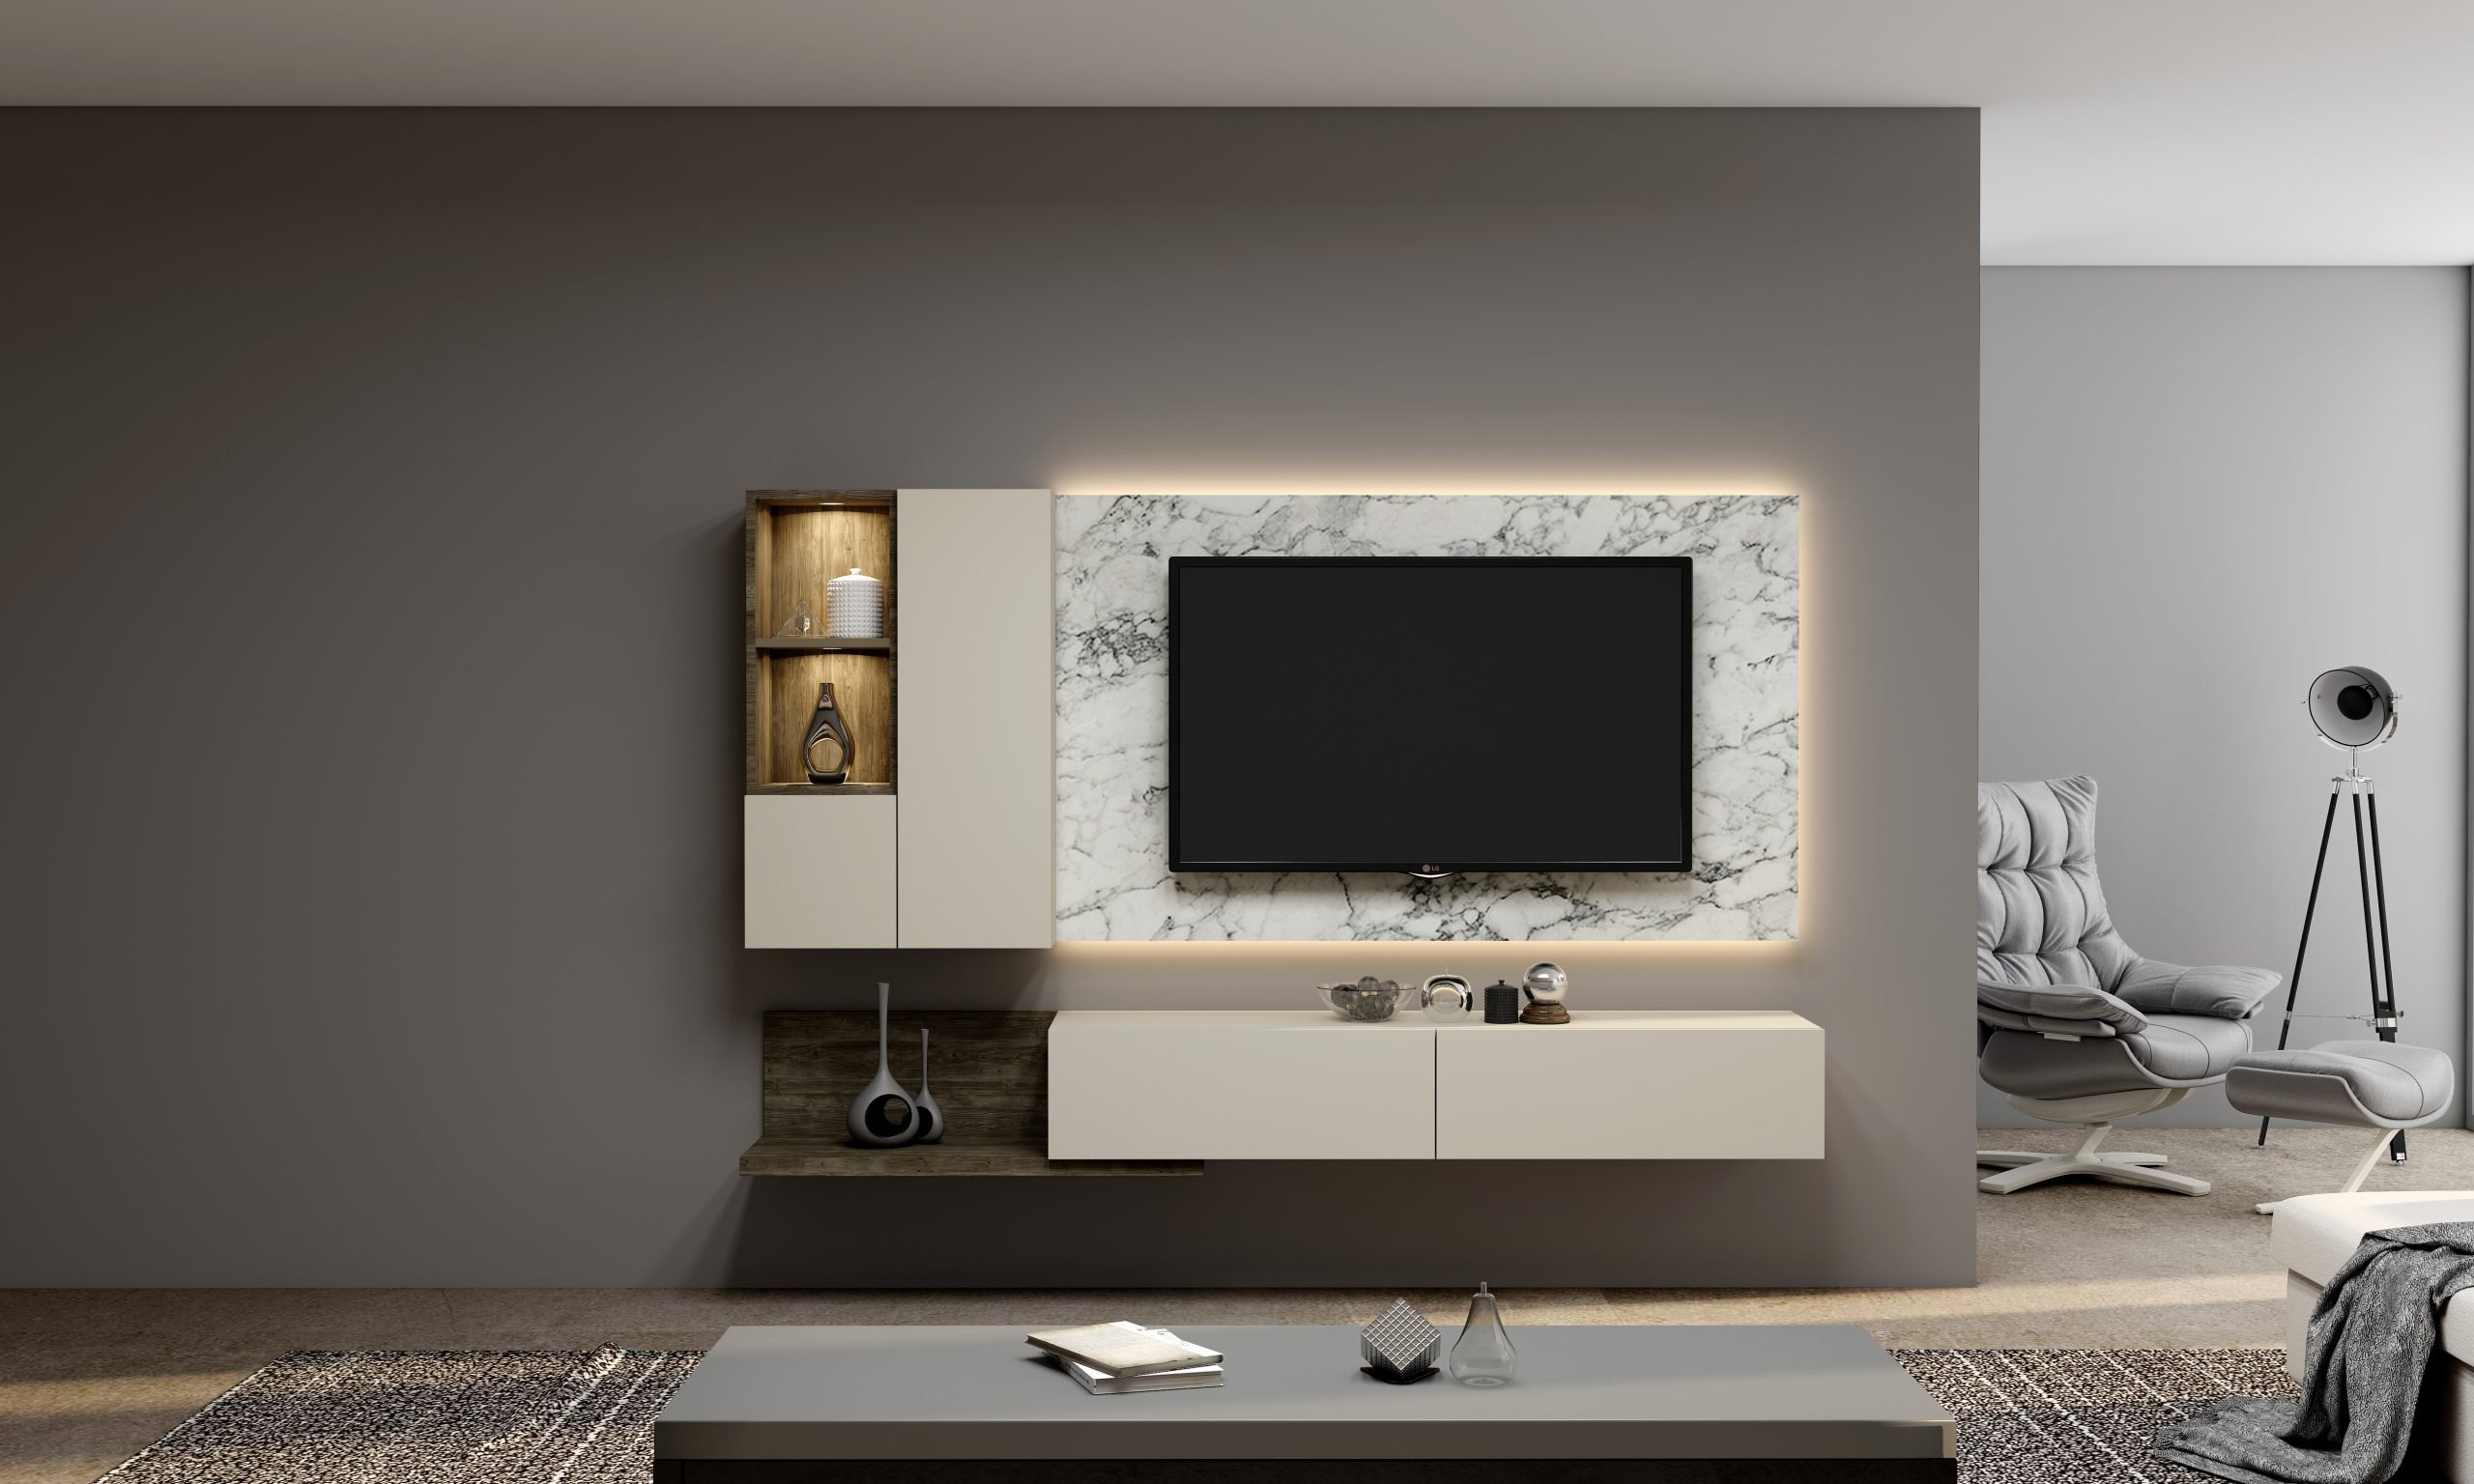 Gloss TV unit with Storage in Open shelf, Wall Units, Drawers in combination with Cream, Natural Carini Walnut and White Levanto Marble